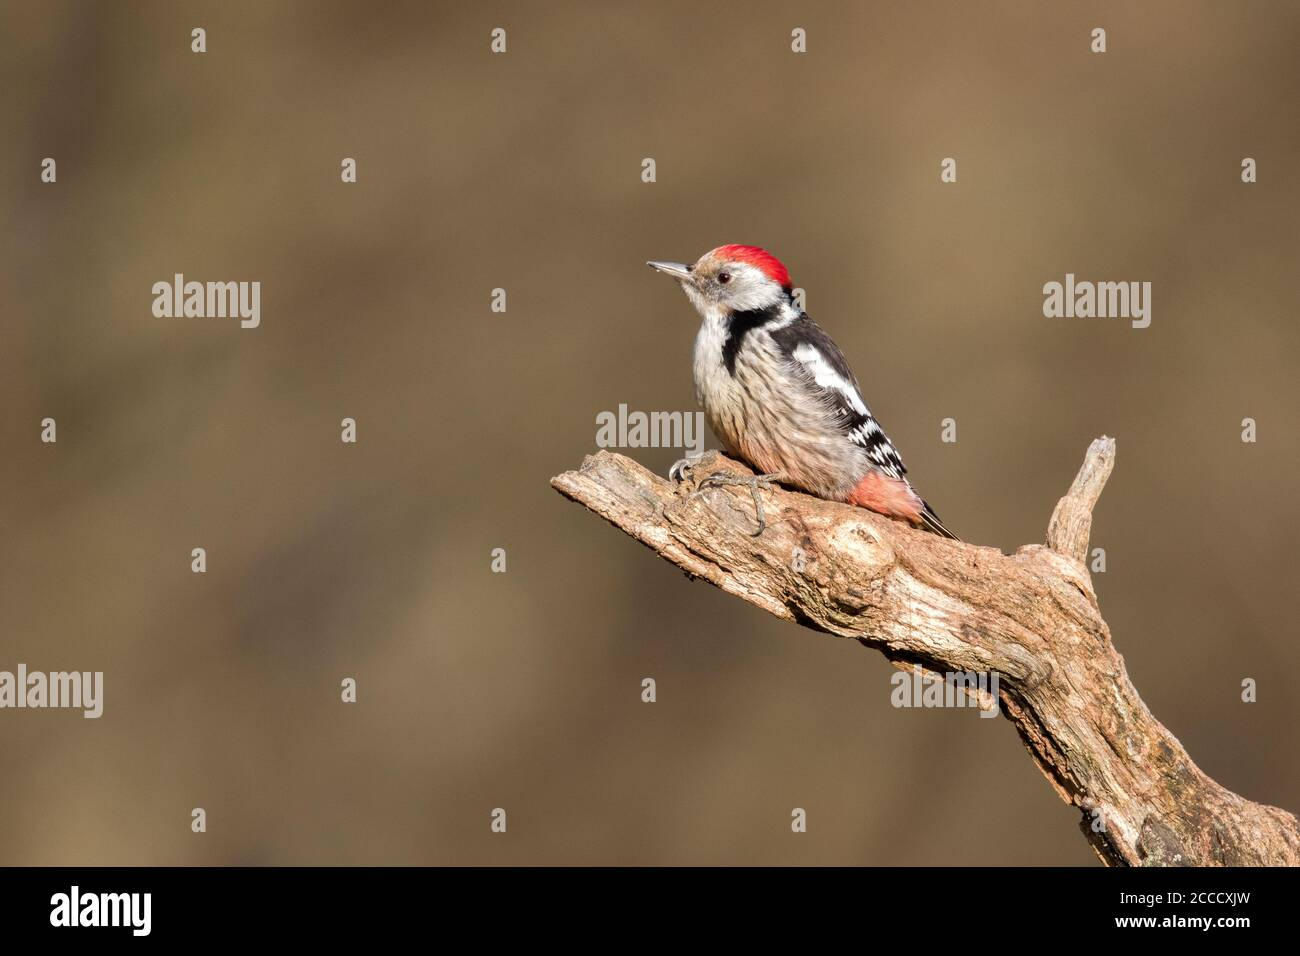 Middle Spotted Woodpecker (Dendrocoptes medius) in wild forest in Bialowieza, Poland. Stock Photo